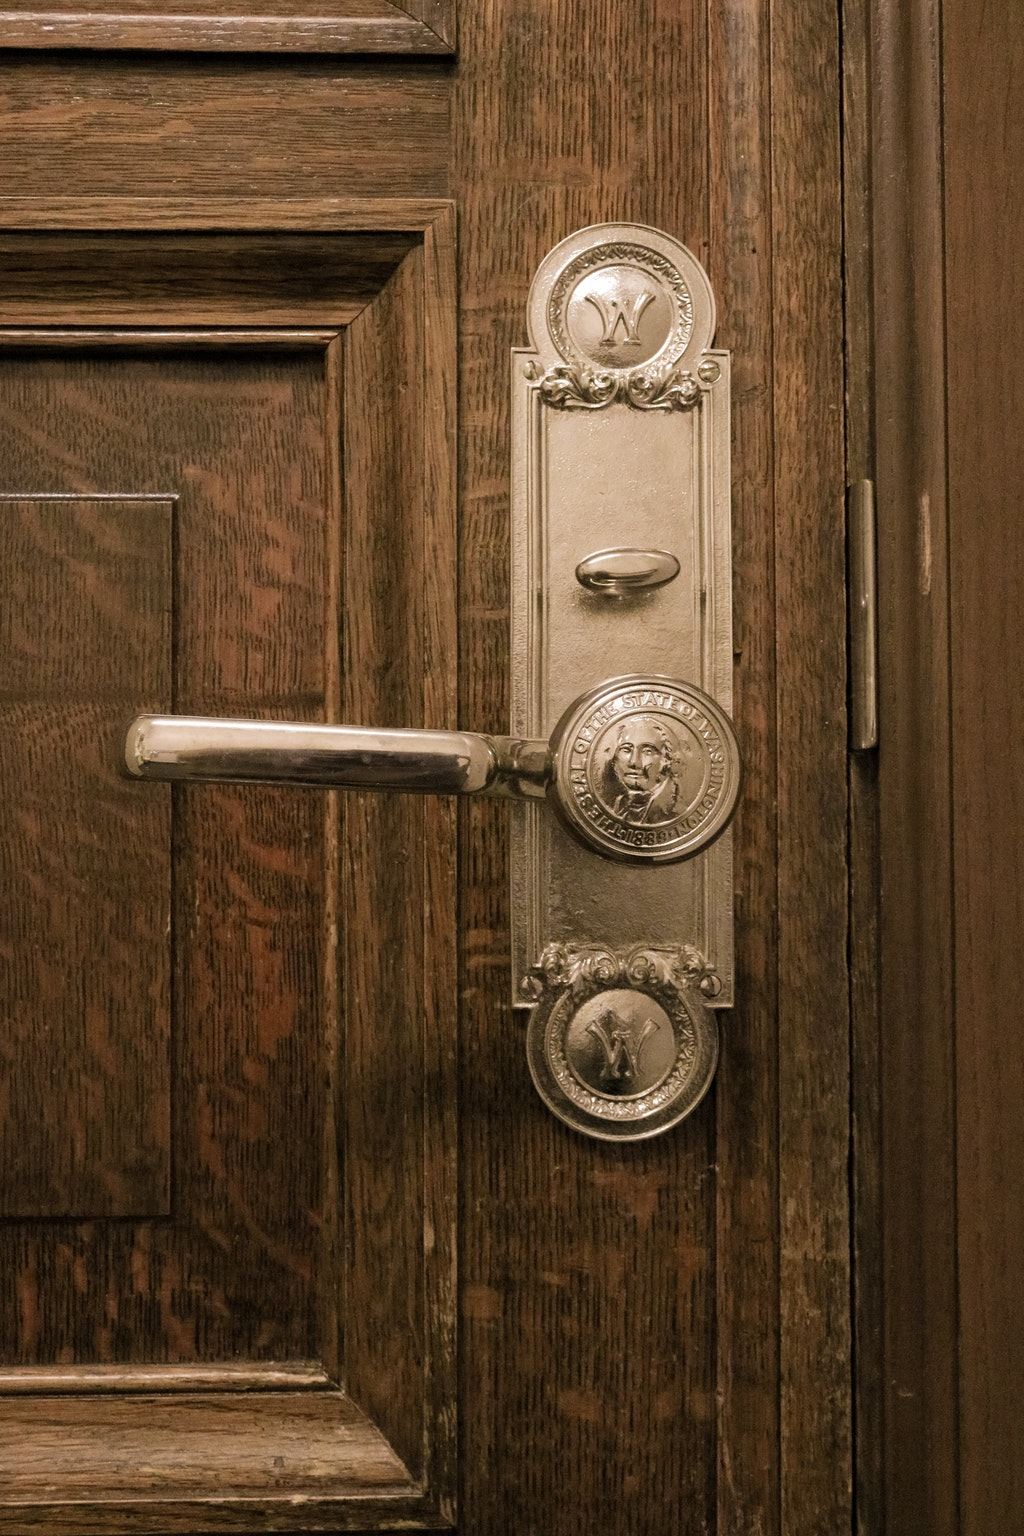 door handle with old architectural design